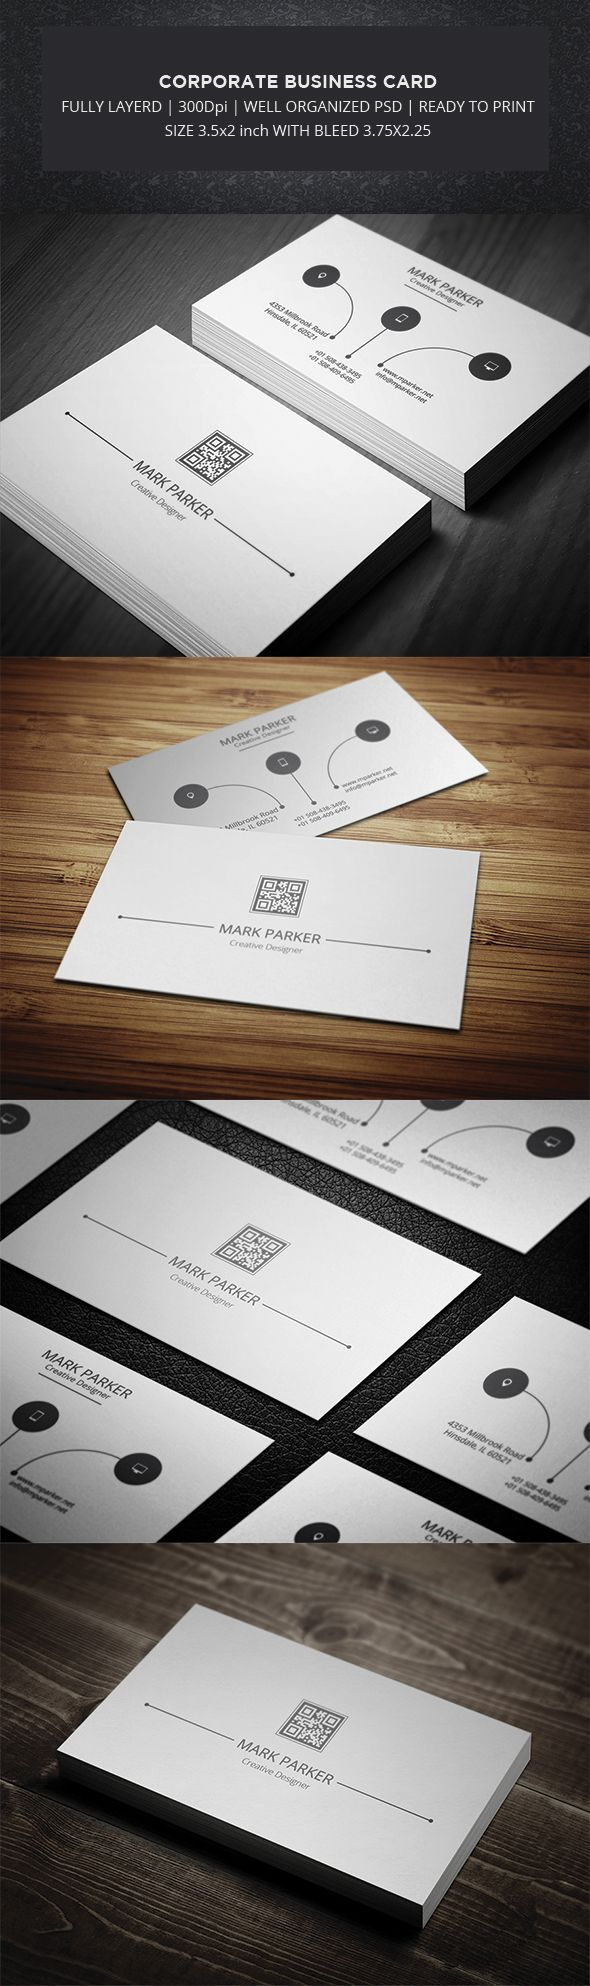 Corporate Identity Business Card comes with simple and minimal professional design.